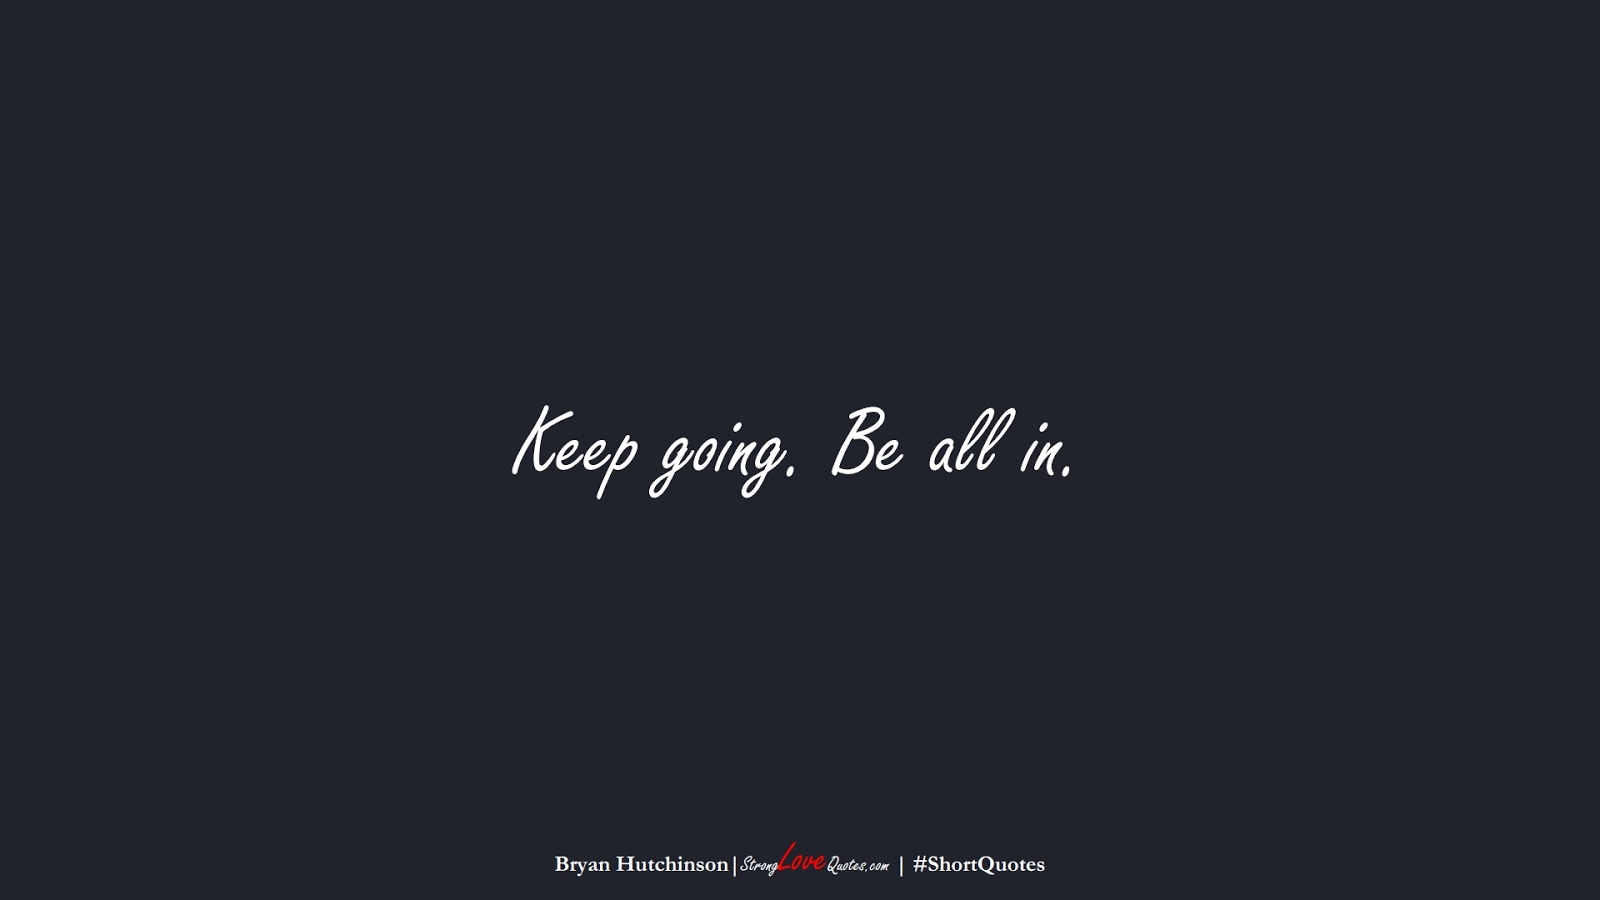 Keep going. Be all in. (Bryan Hutchinson);  #ShortQuotes